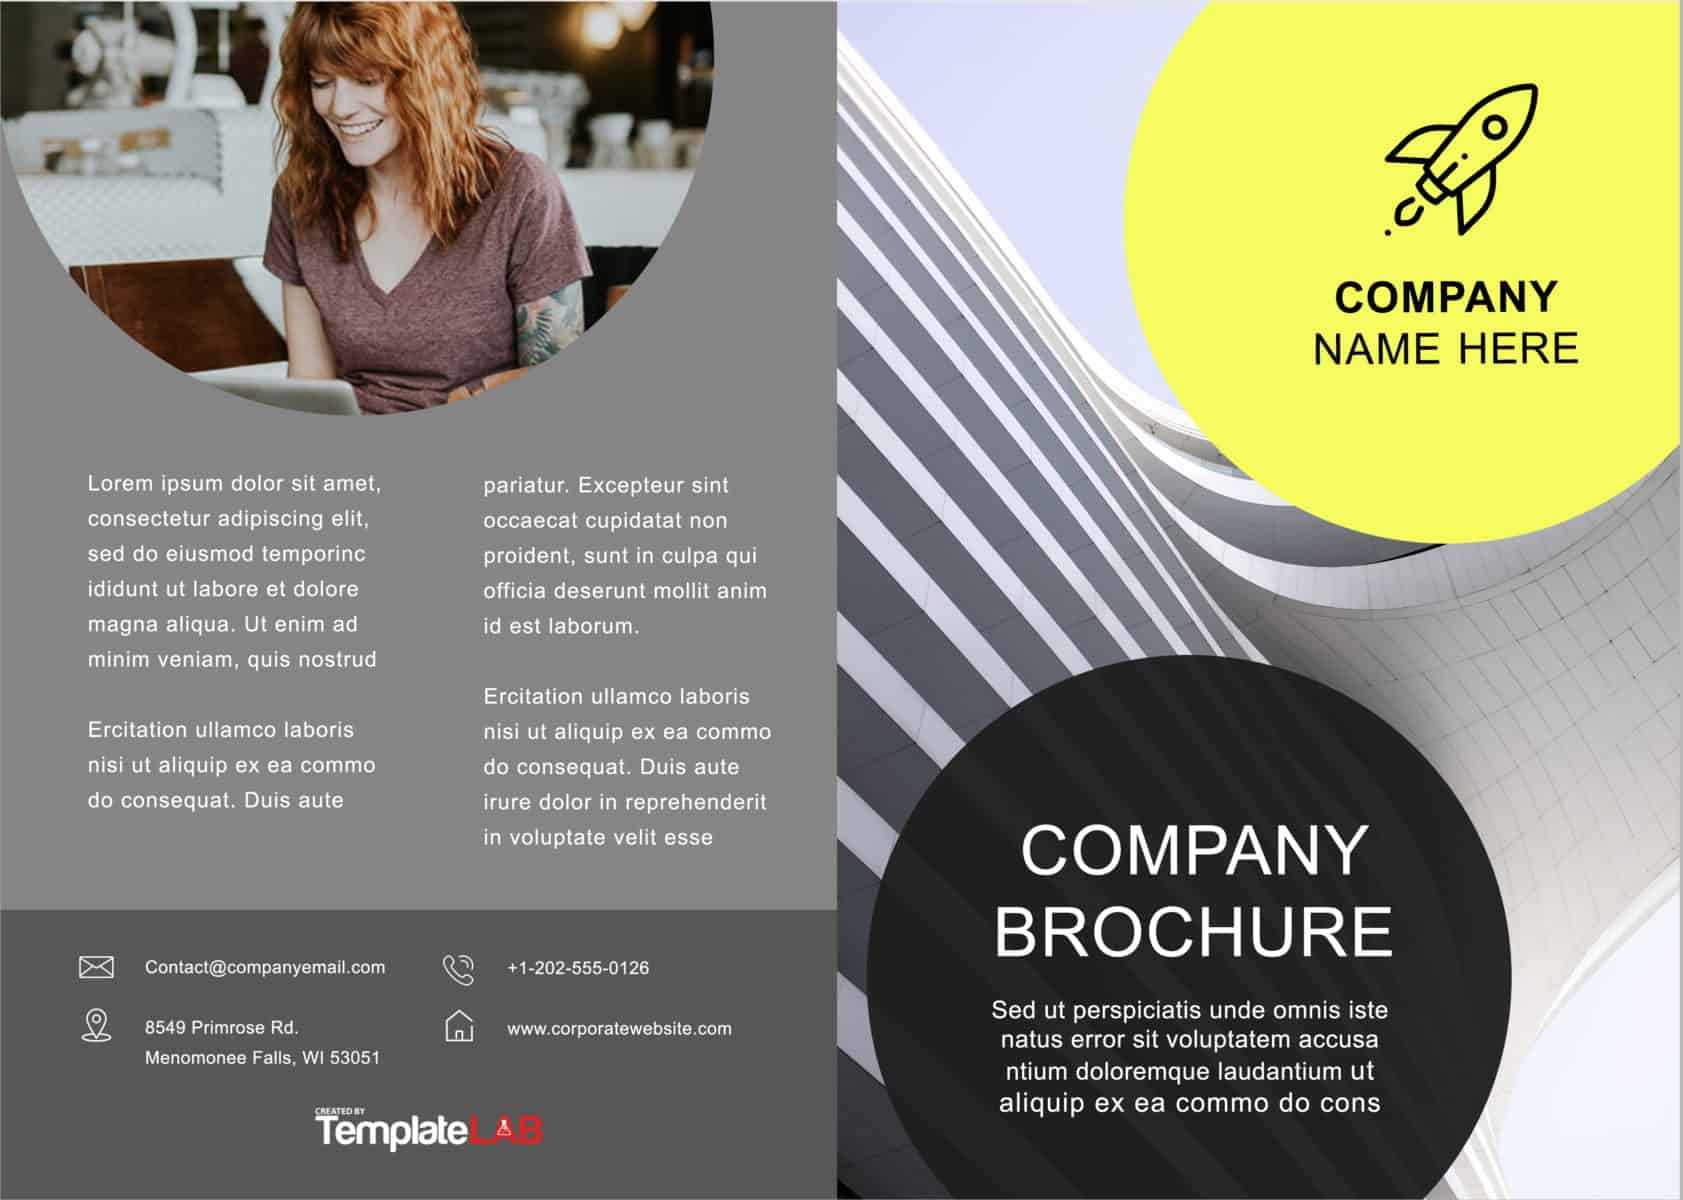 33 Free Brochure Templates (Word + Pdf) ᐅ Template Lab Intended For Creative Brochure Templates Free Download